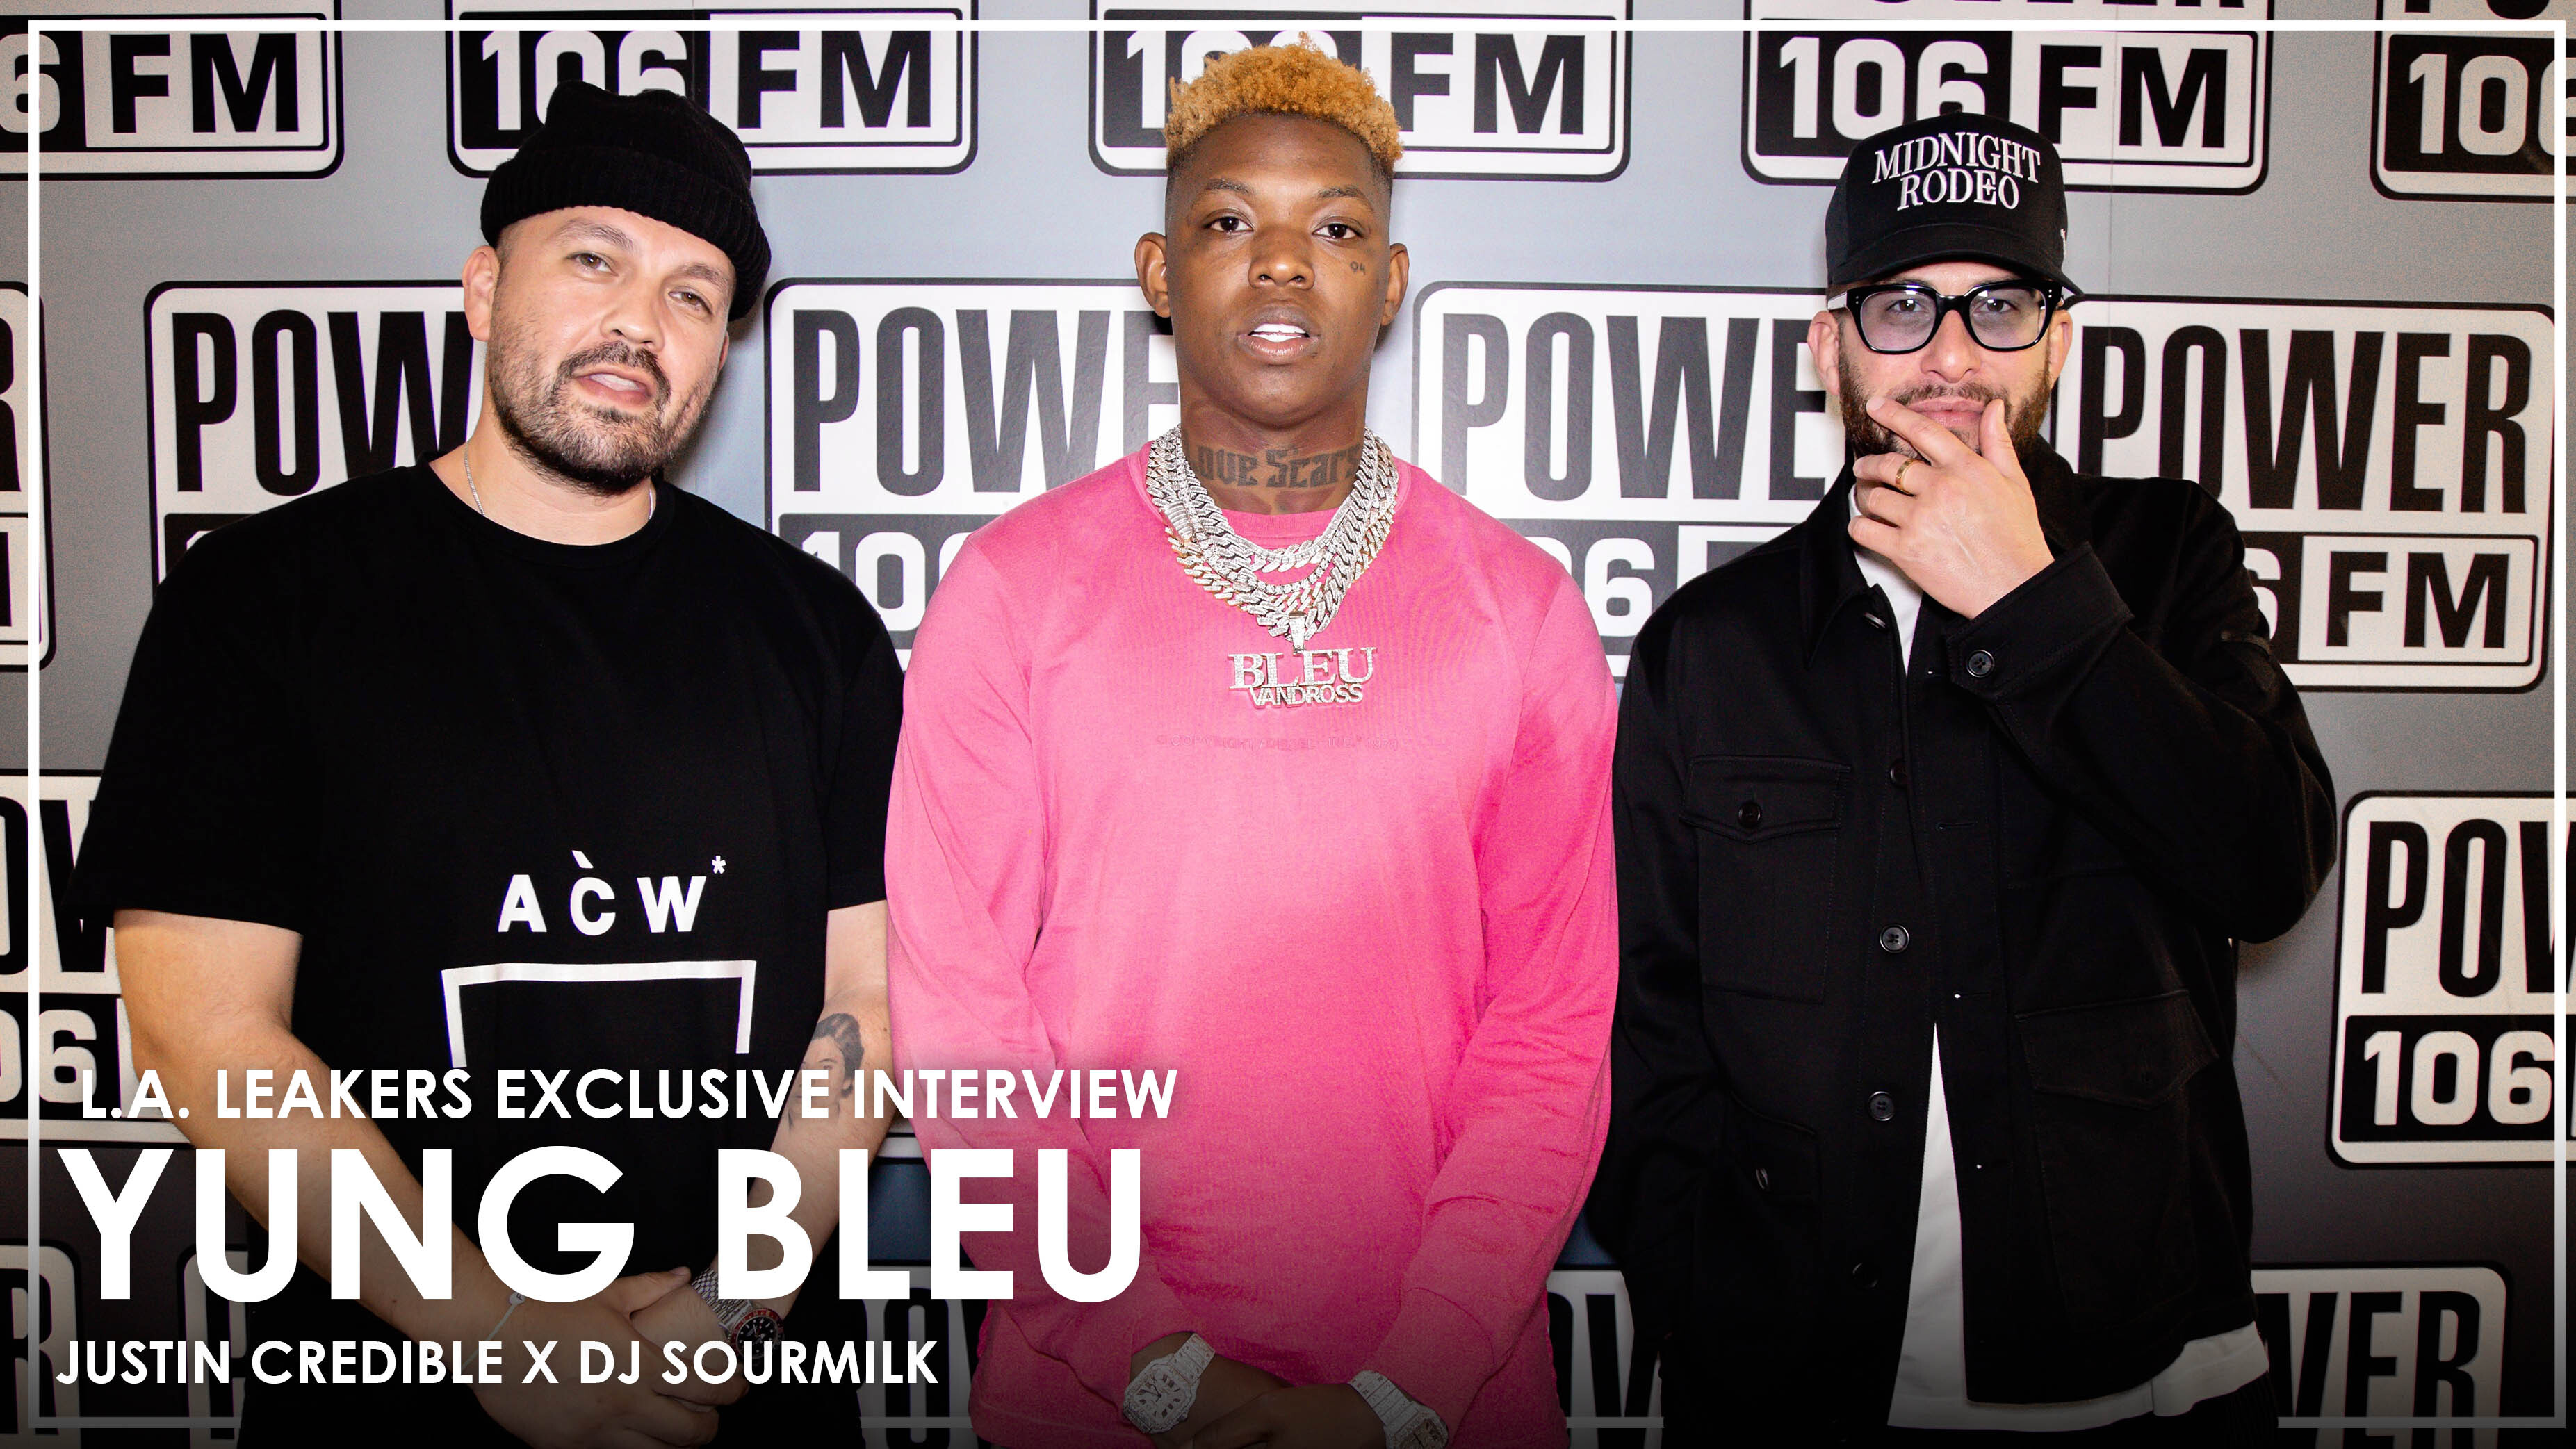 Yung Bleu Talks Going Double Platinum With Drake & Big Sean, H.E.R. Features On Upcoming Project